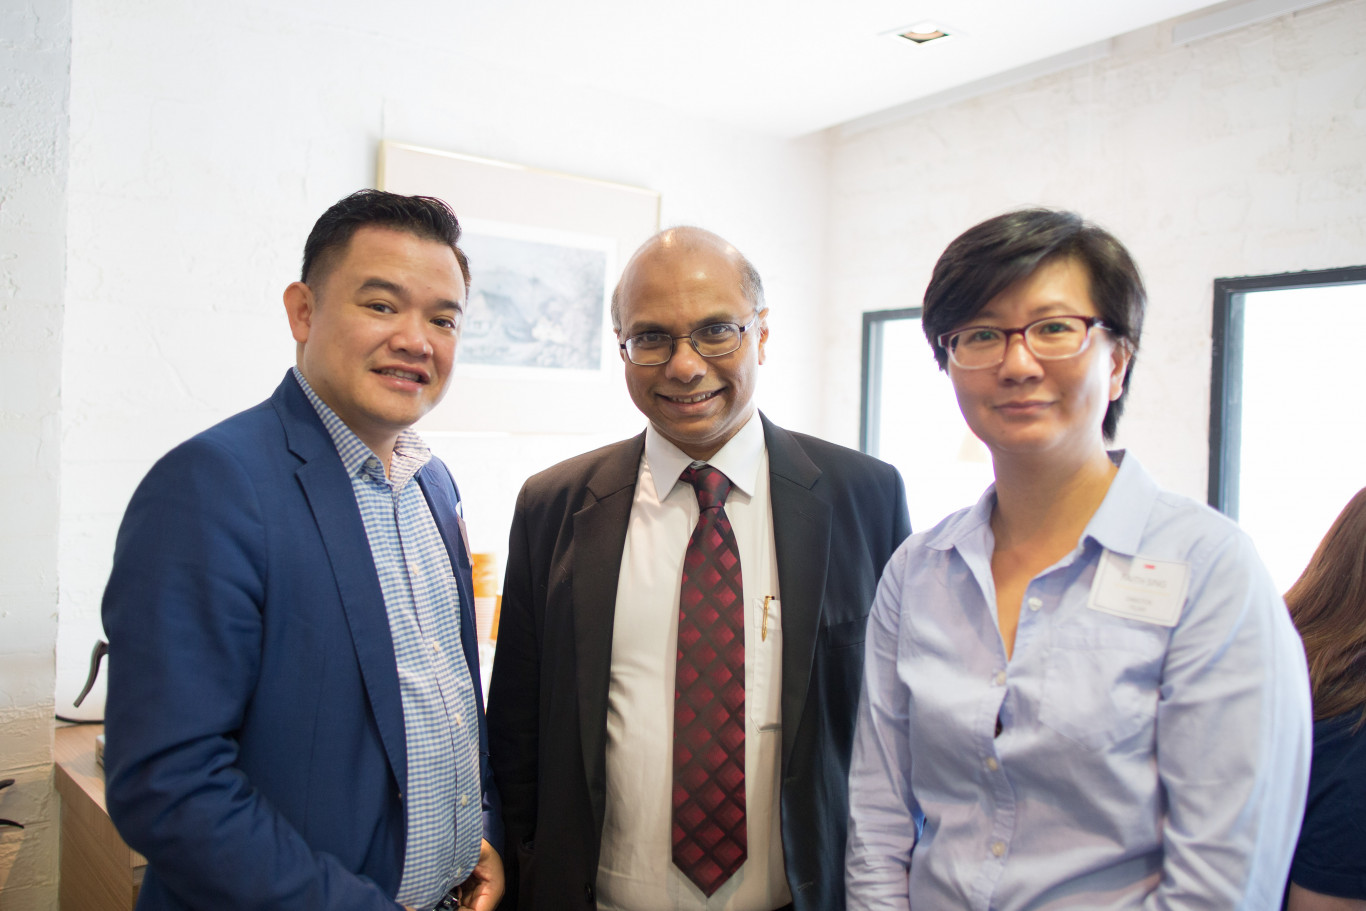 ham with Gregory Vijayendran, President of the Law Society of Singapore (Also partner of Rajah & Tann), and Faith Sing, Director of FSLaw.